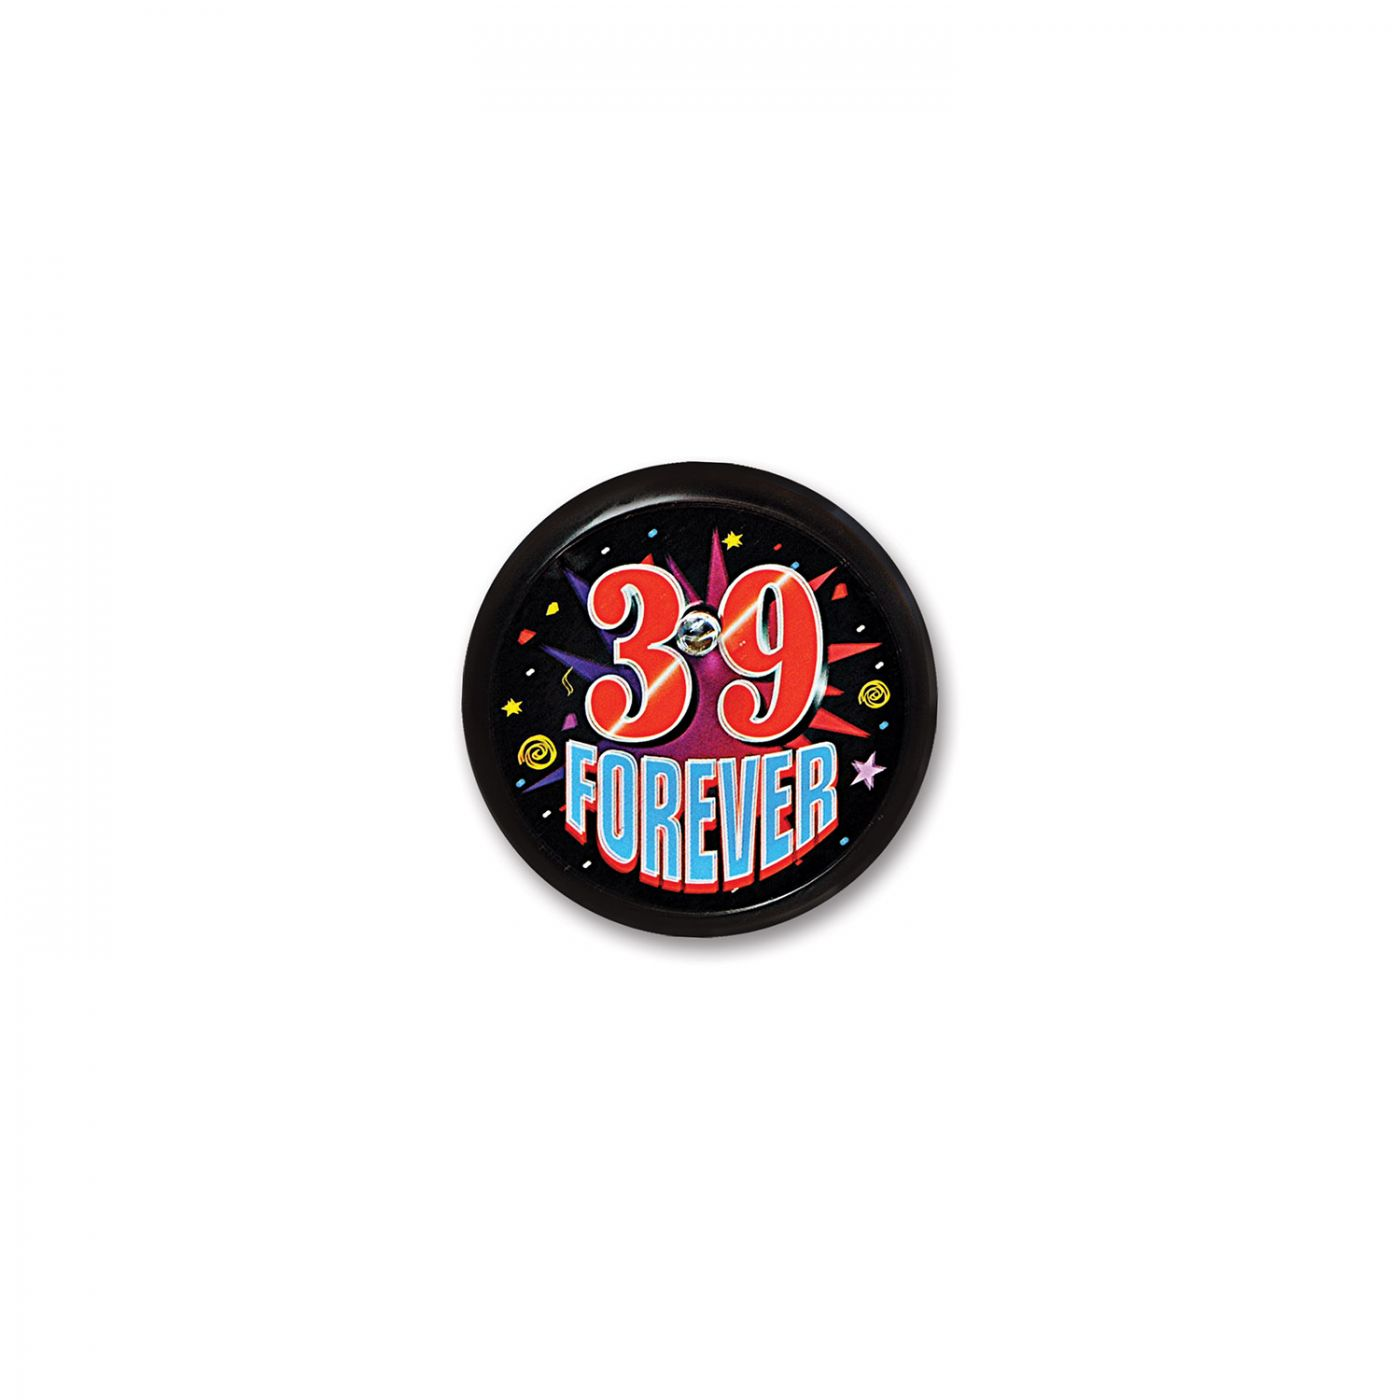 Image of 39 Forever Blinking Button (6)